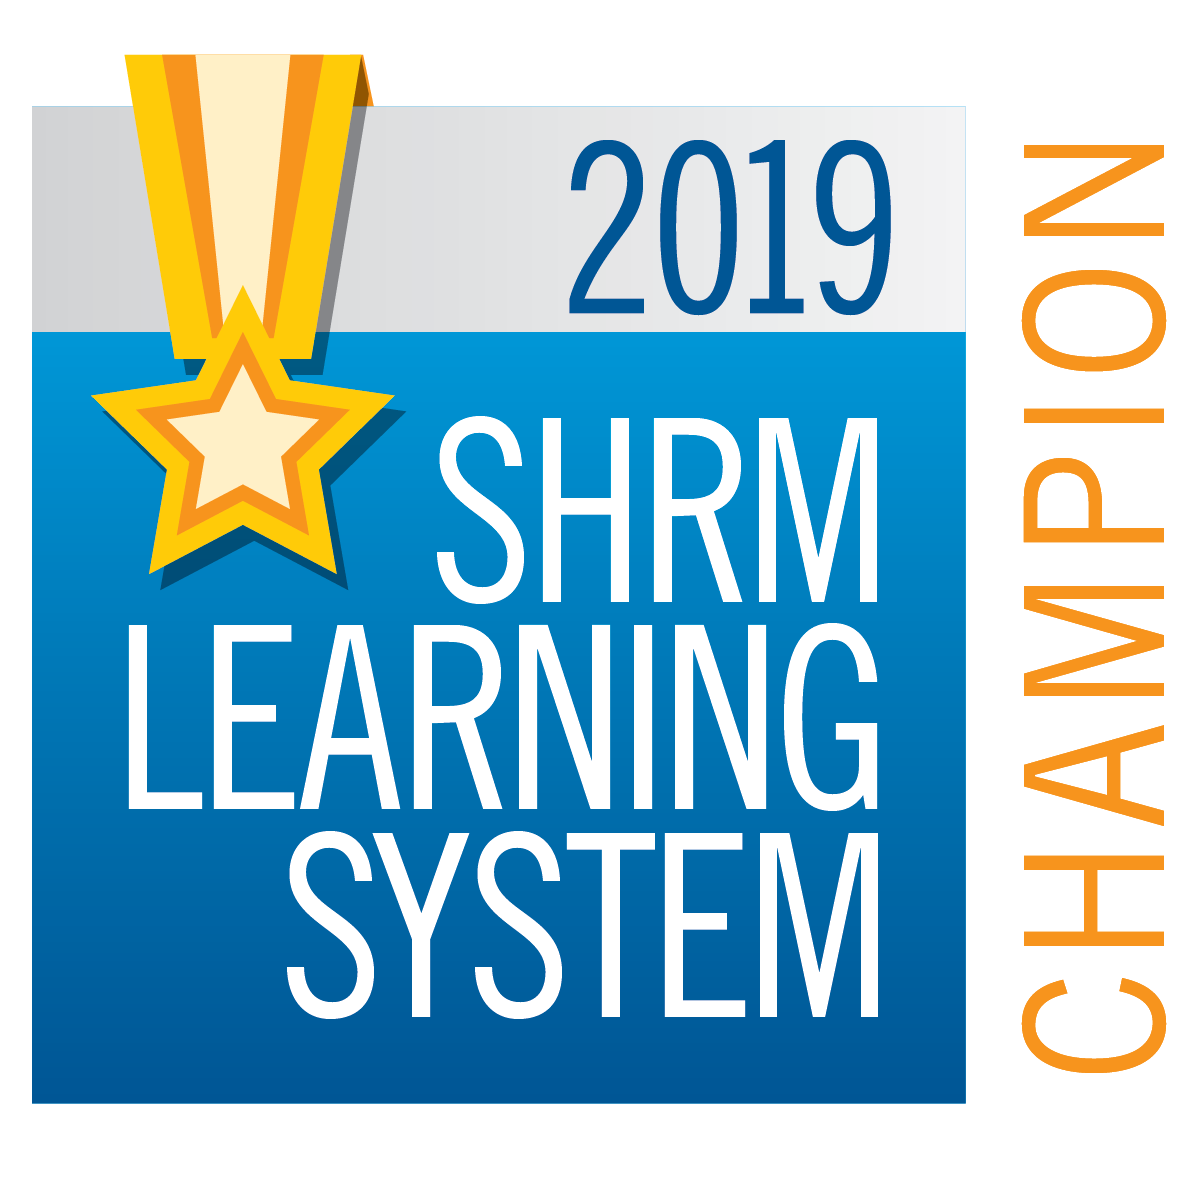 2019 SHRM Learning System Champion